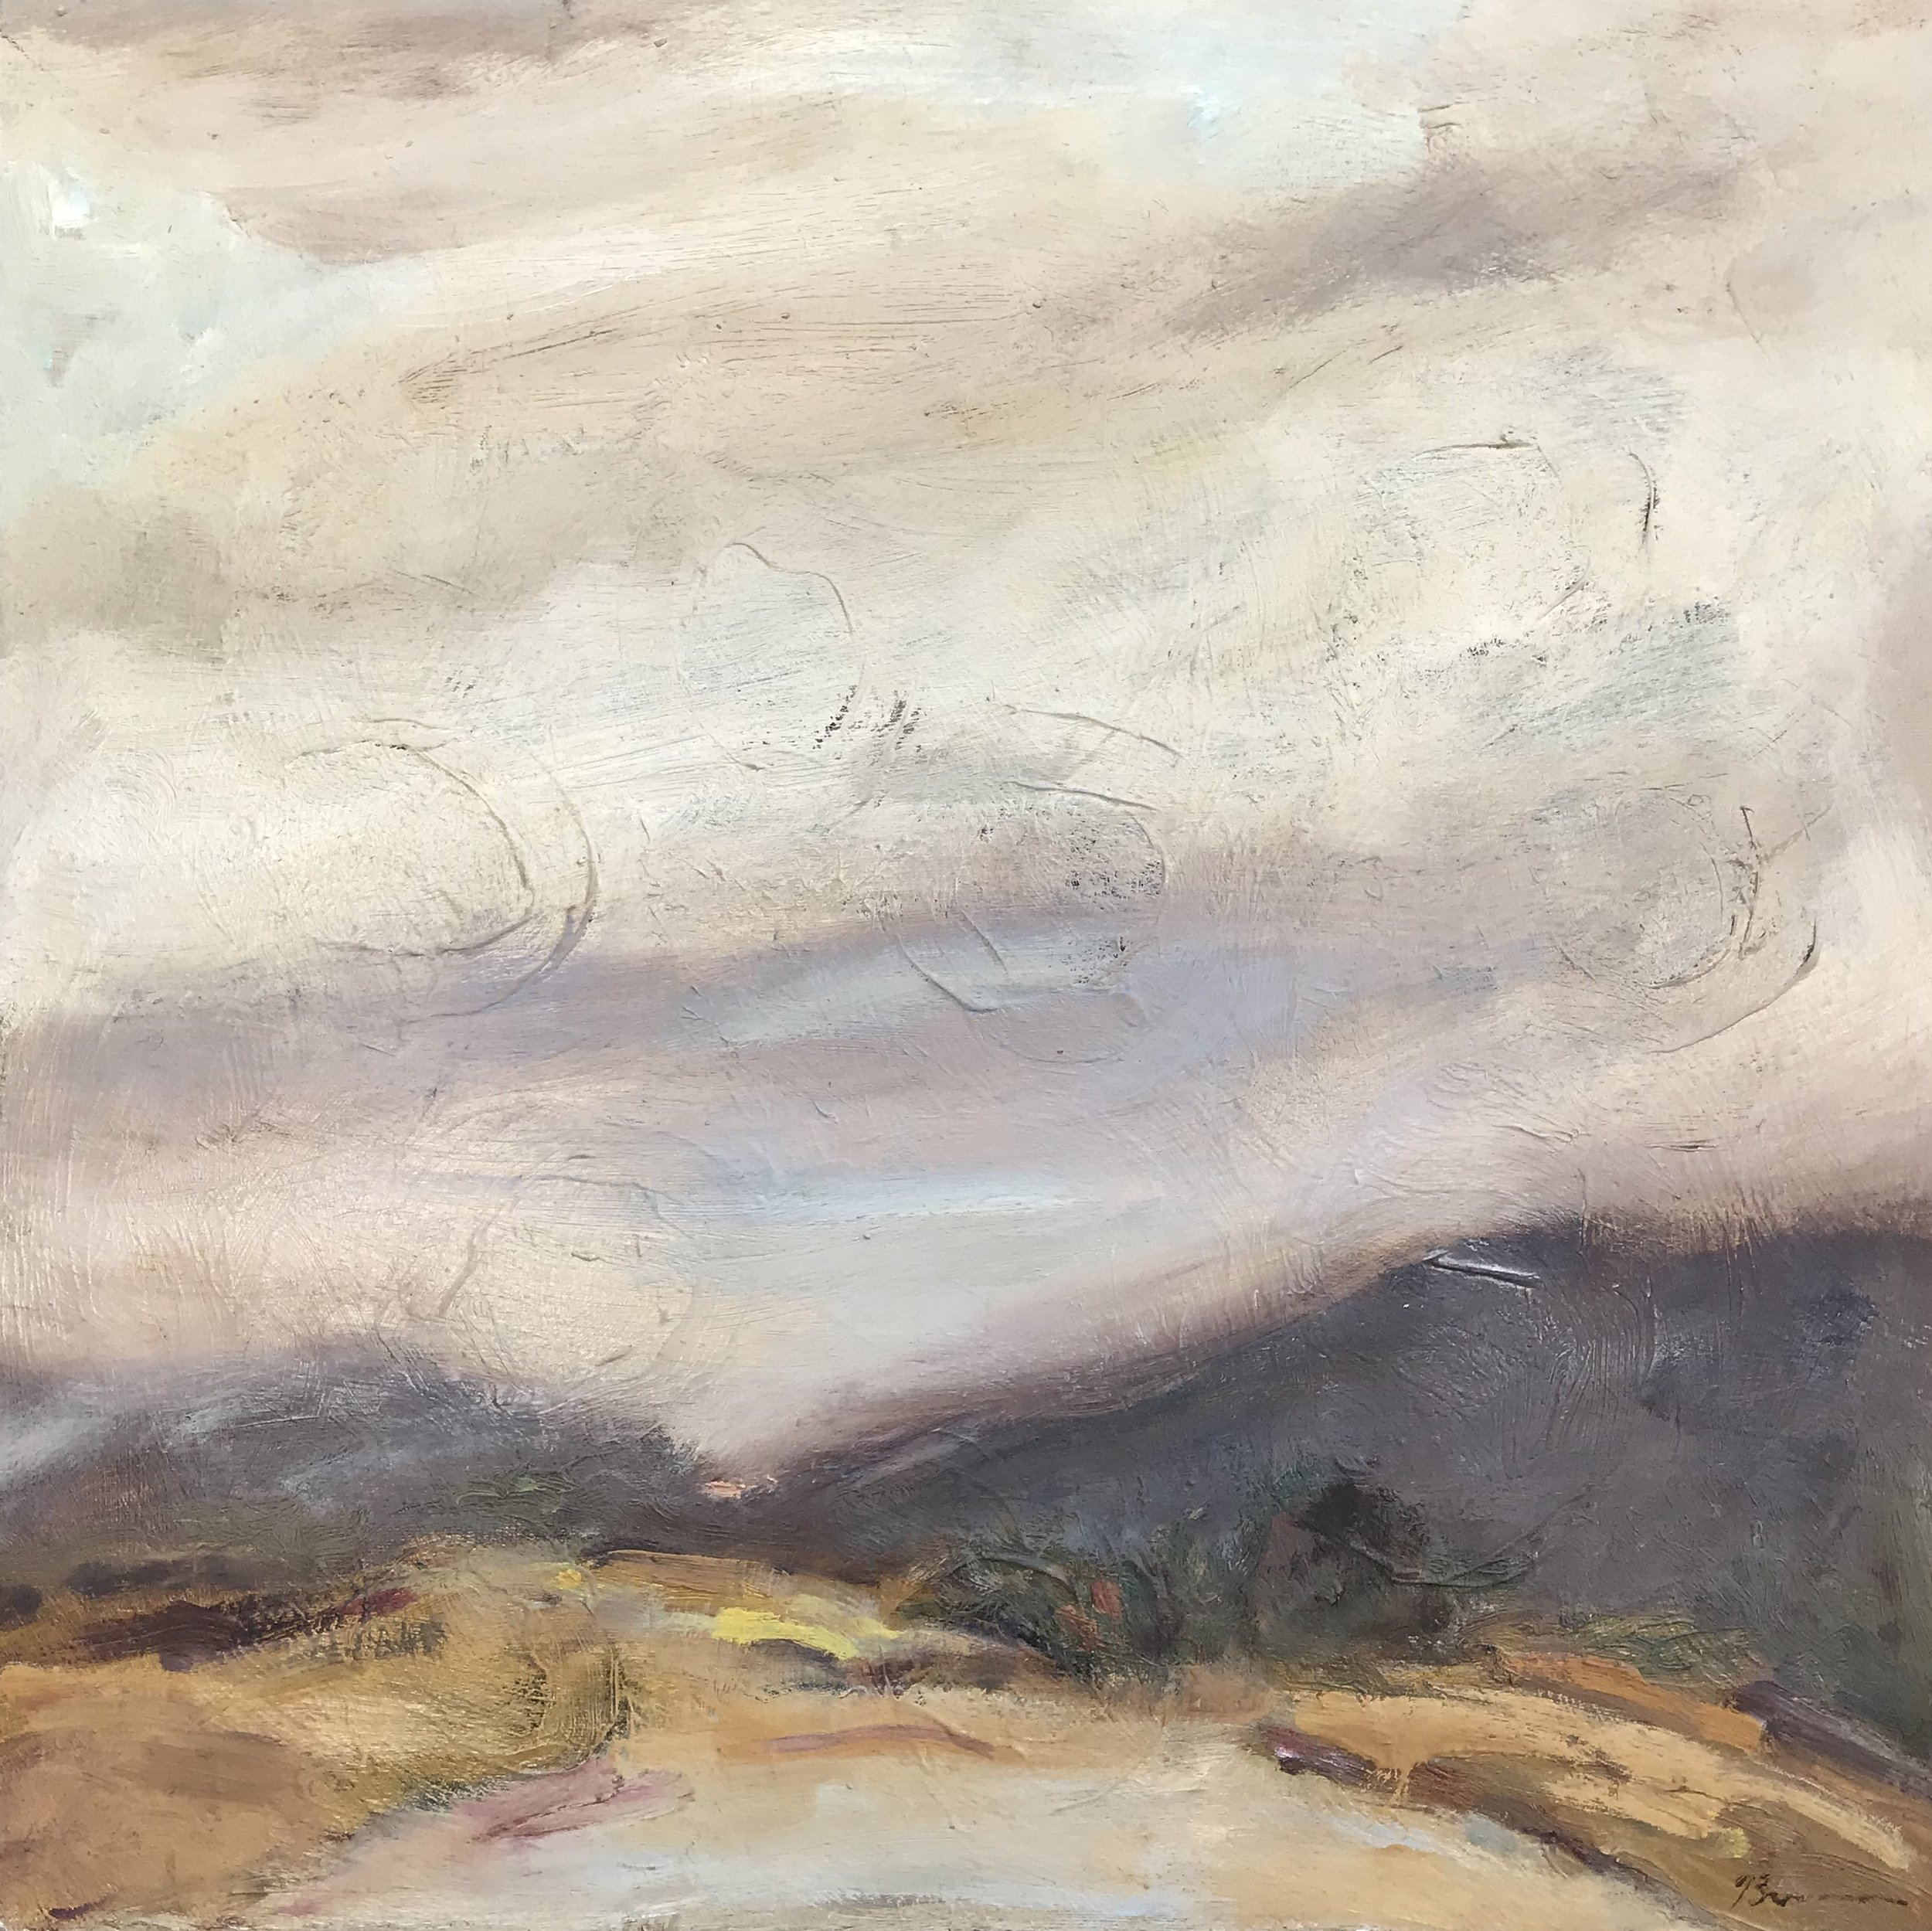 """""""Purple Mountain Tops"""" - 24"""" x 24"""", oil on canvasValue: $2,650Opening bid: $1,050email your bid to: art@bradfordbrenner.com"""